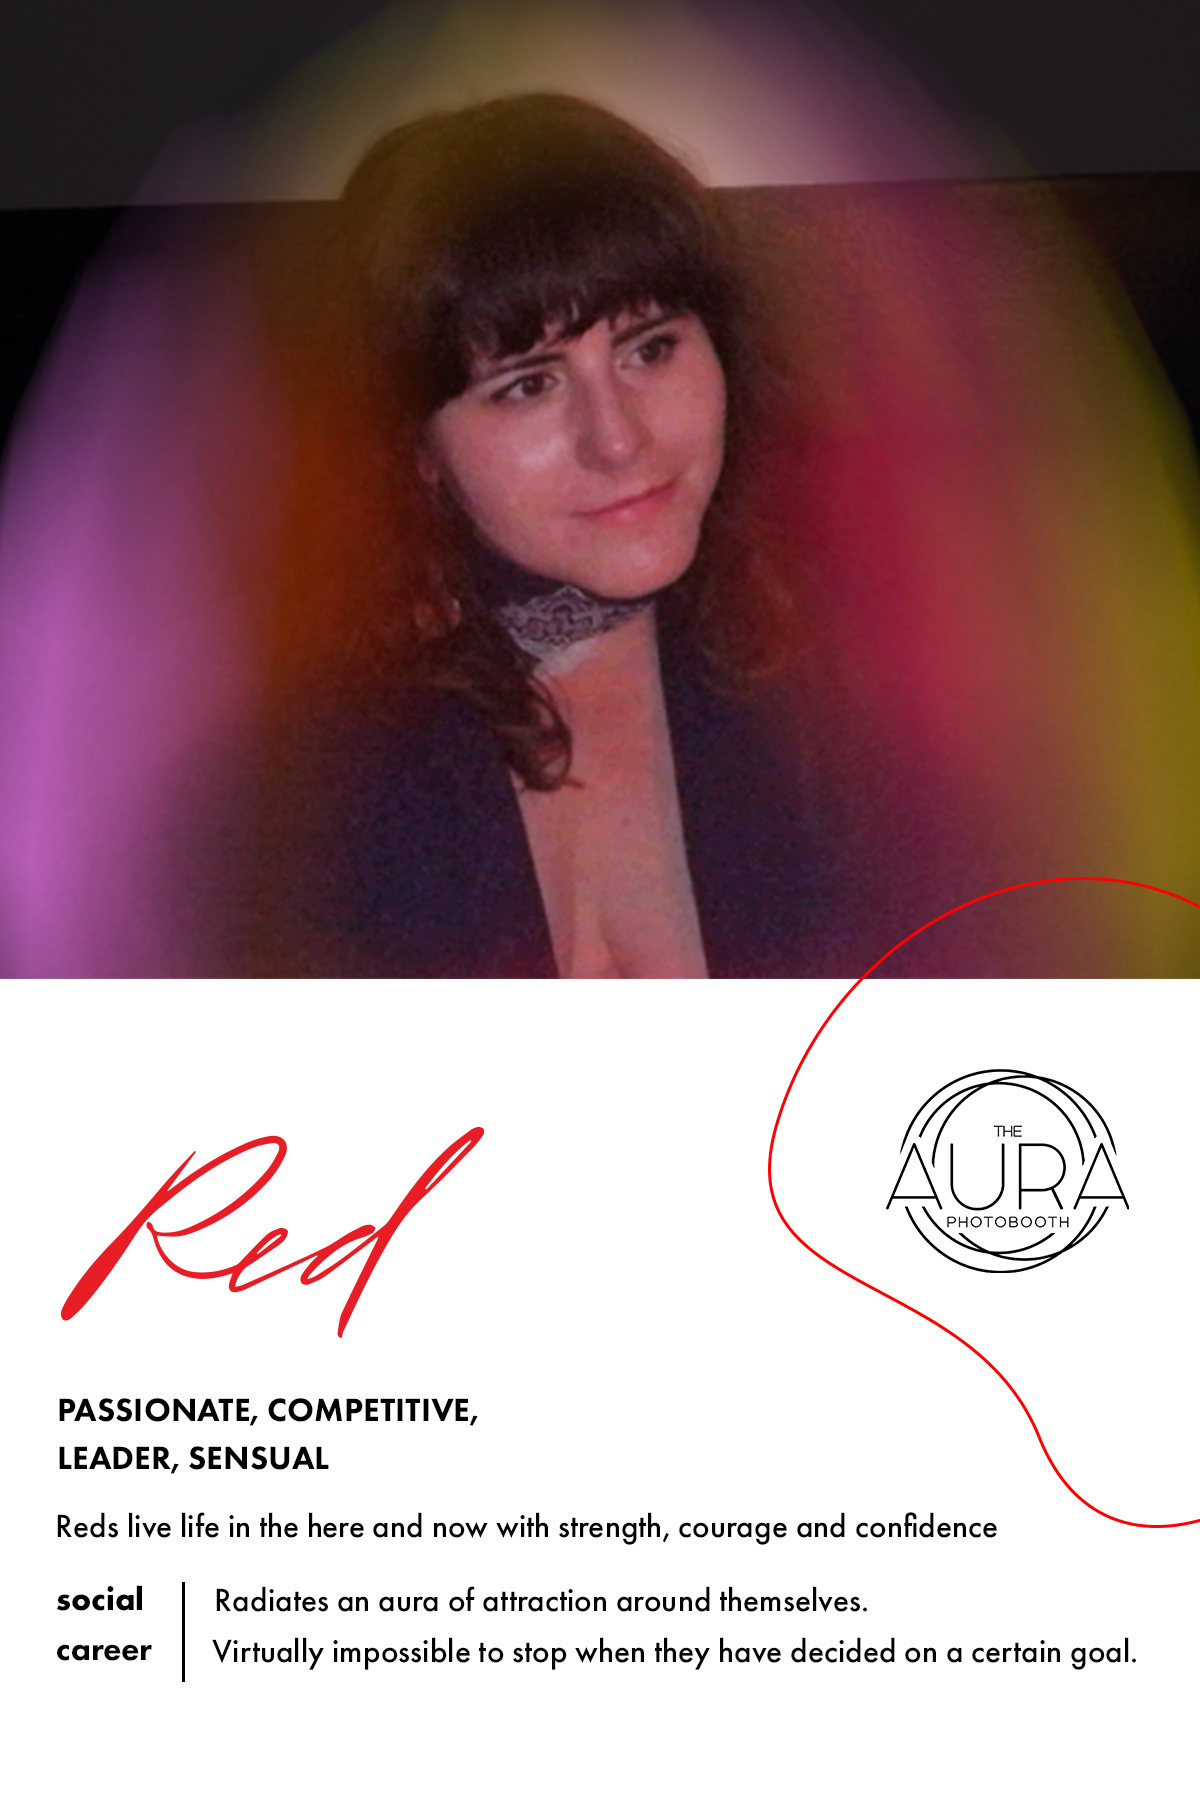 Red Aura Reading | The Aura Photobooth